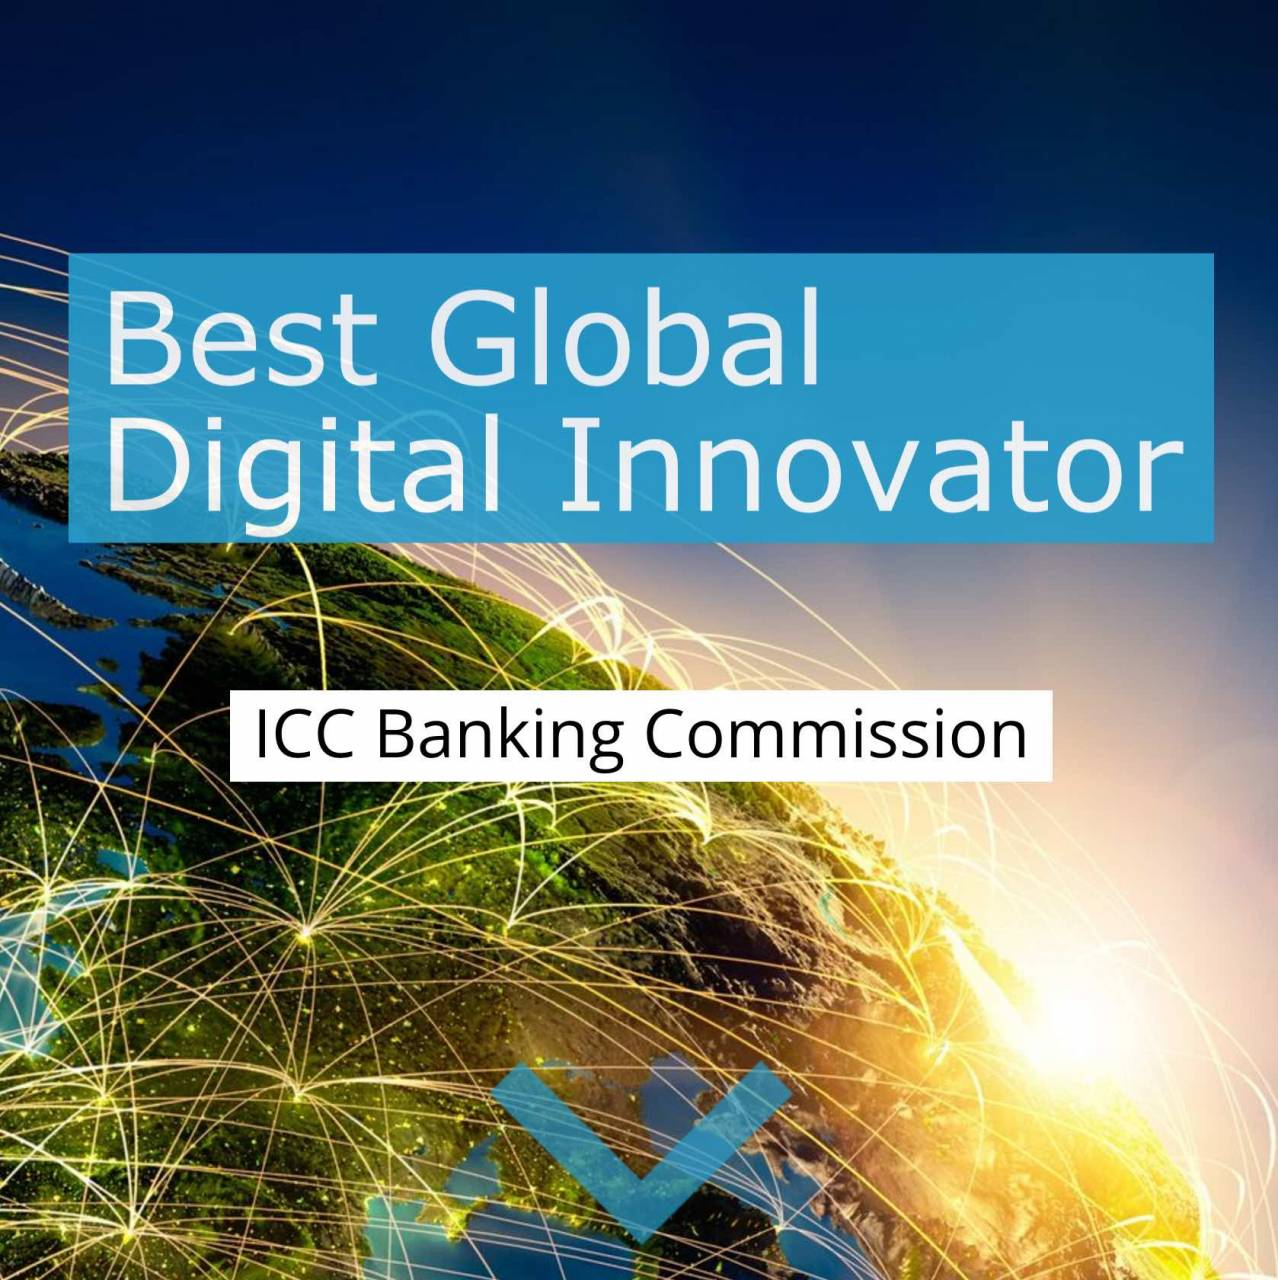 ICC Banking Commission Small Hero